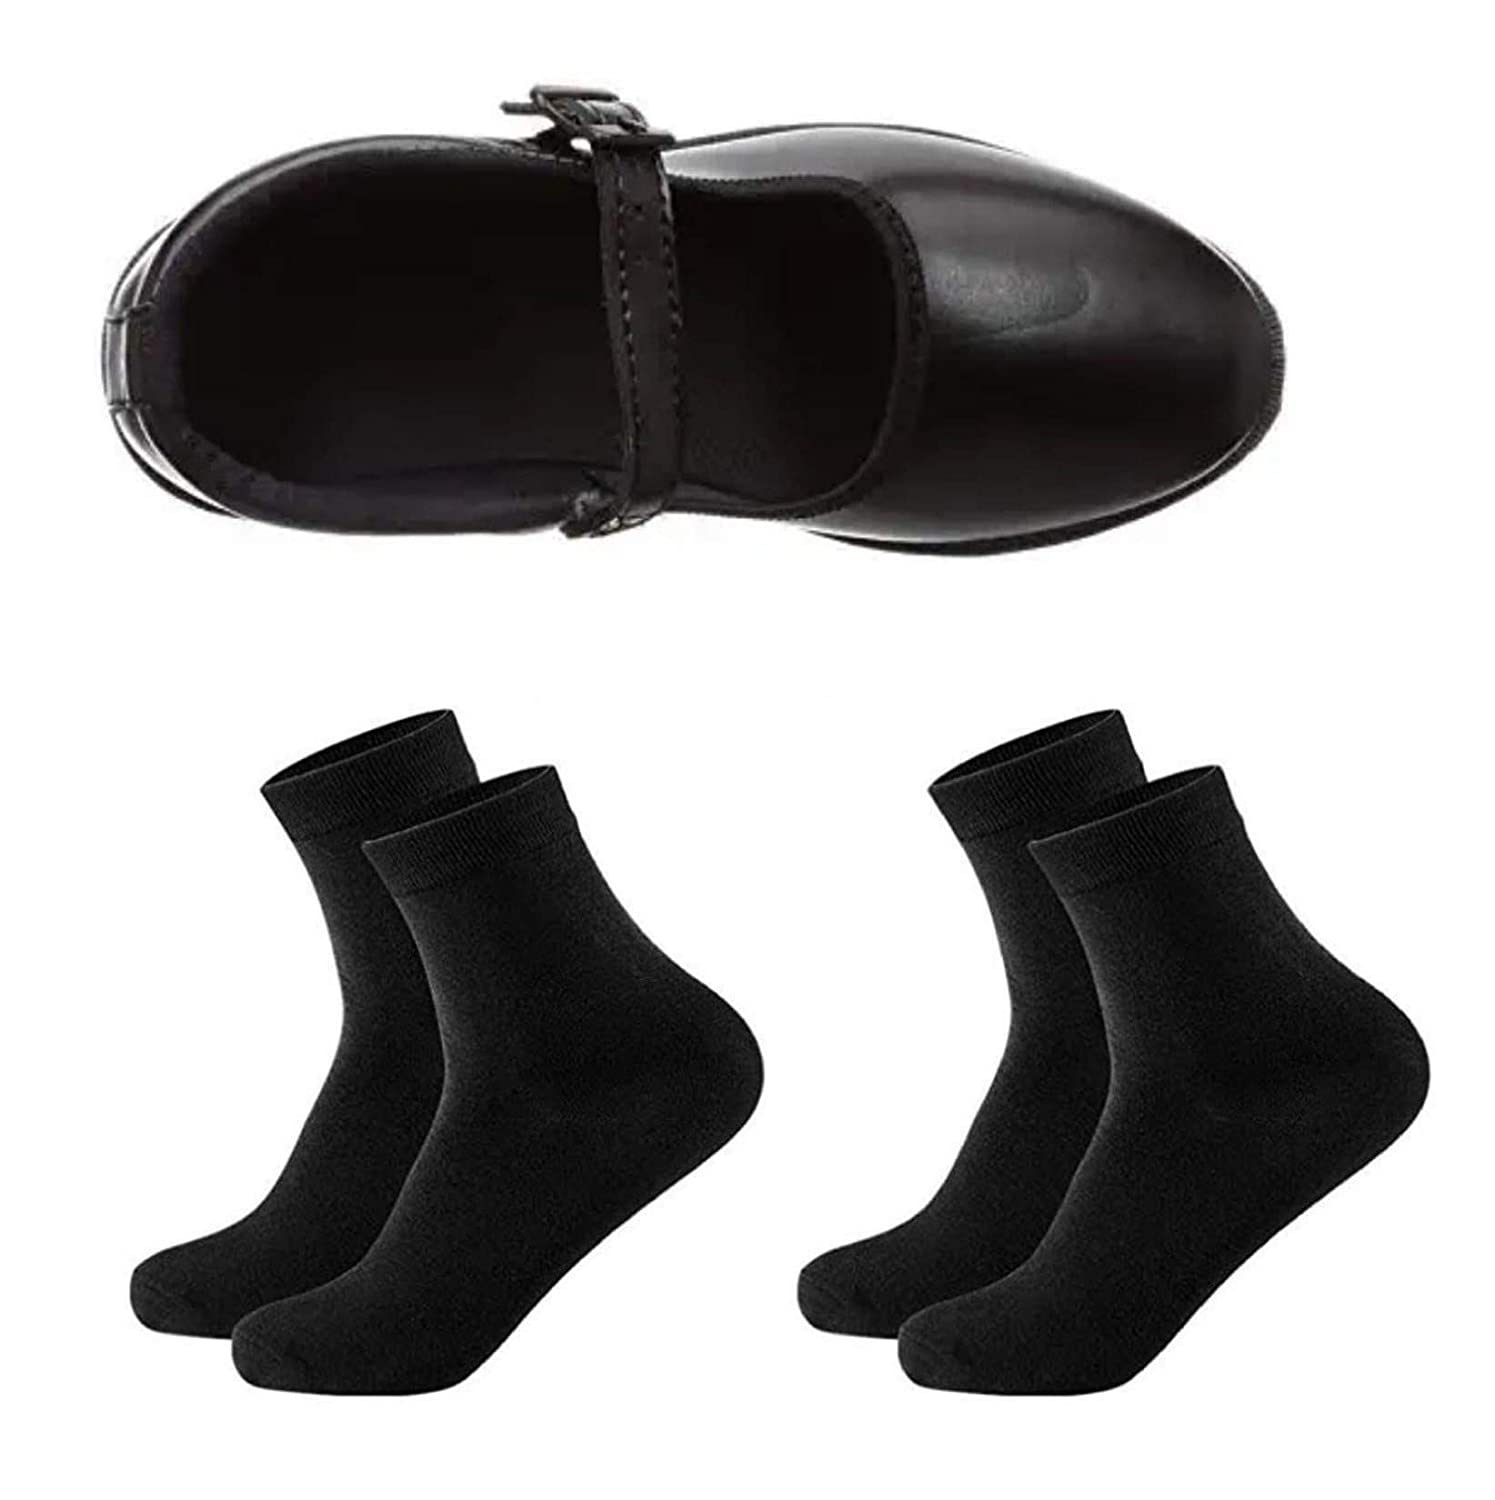 School Shoes Black Combo Offer